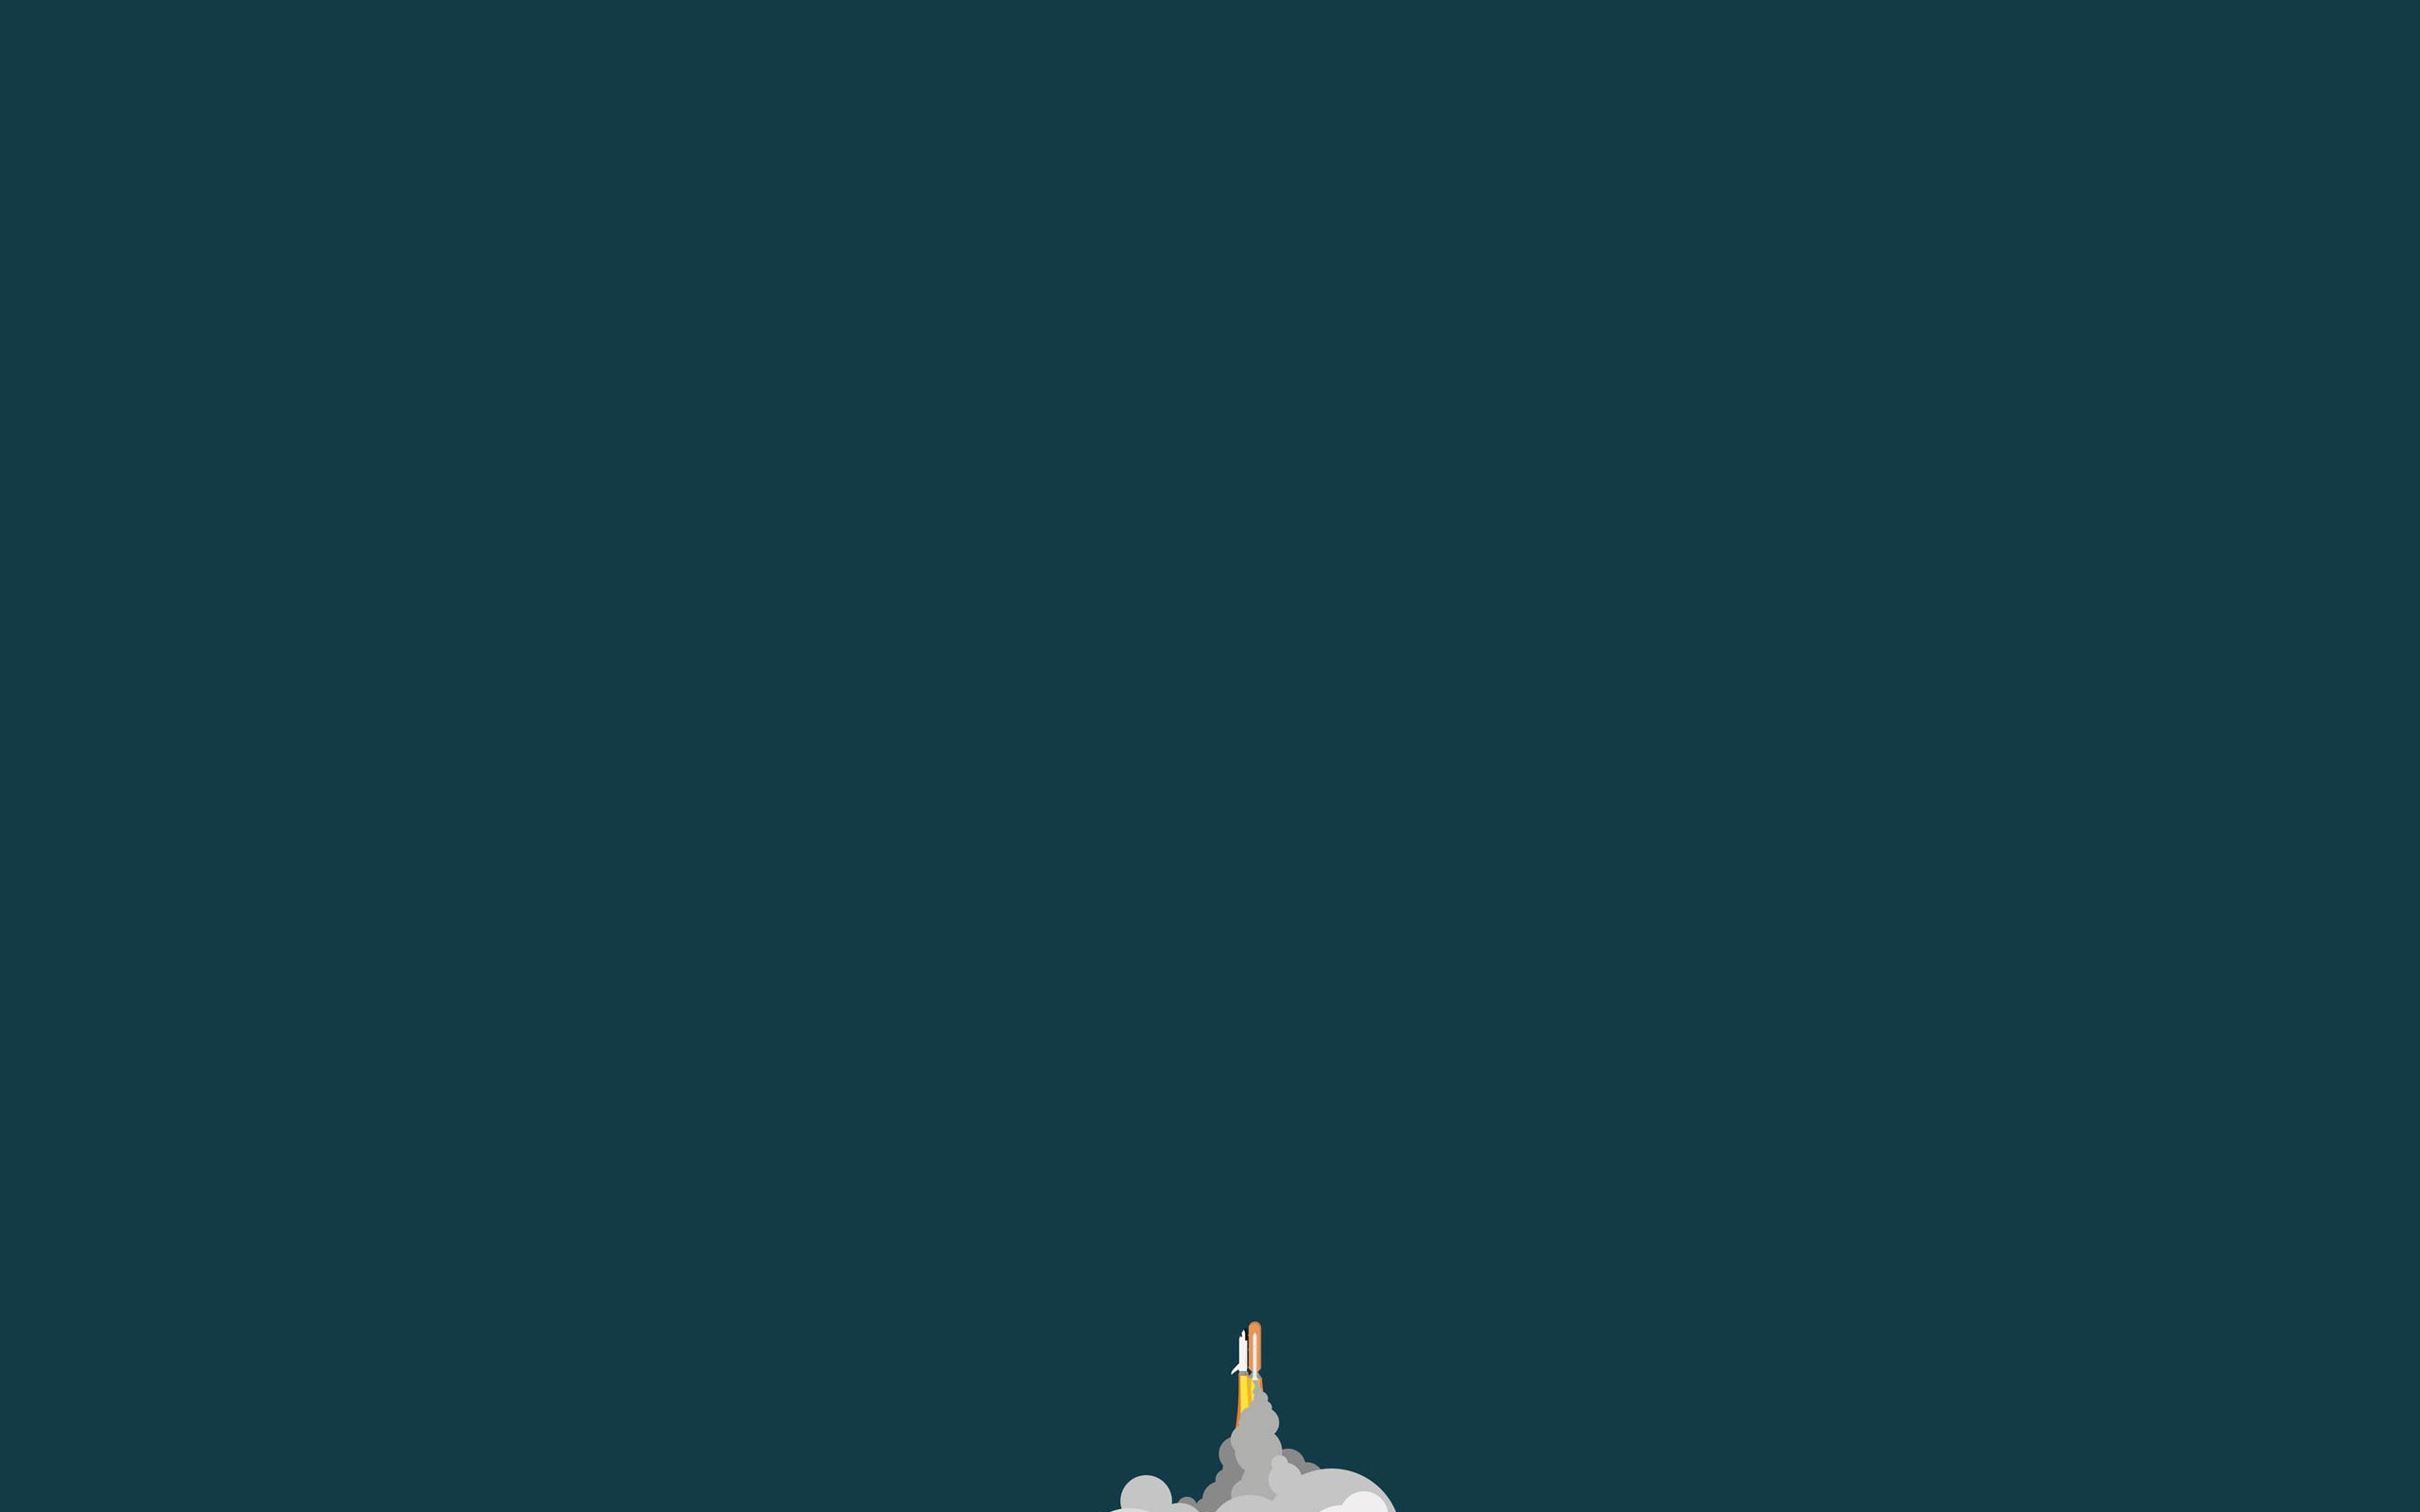 General 2560x1600 space minimalism space shuttle Launch green background rocket